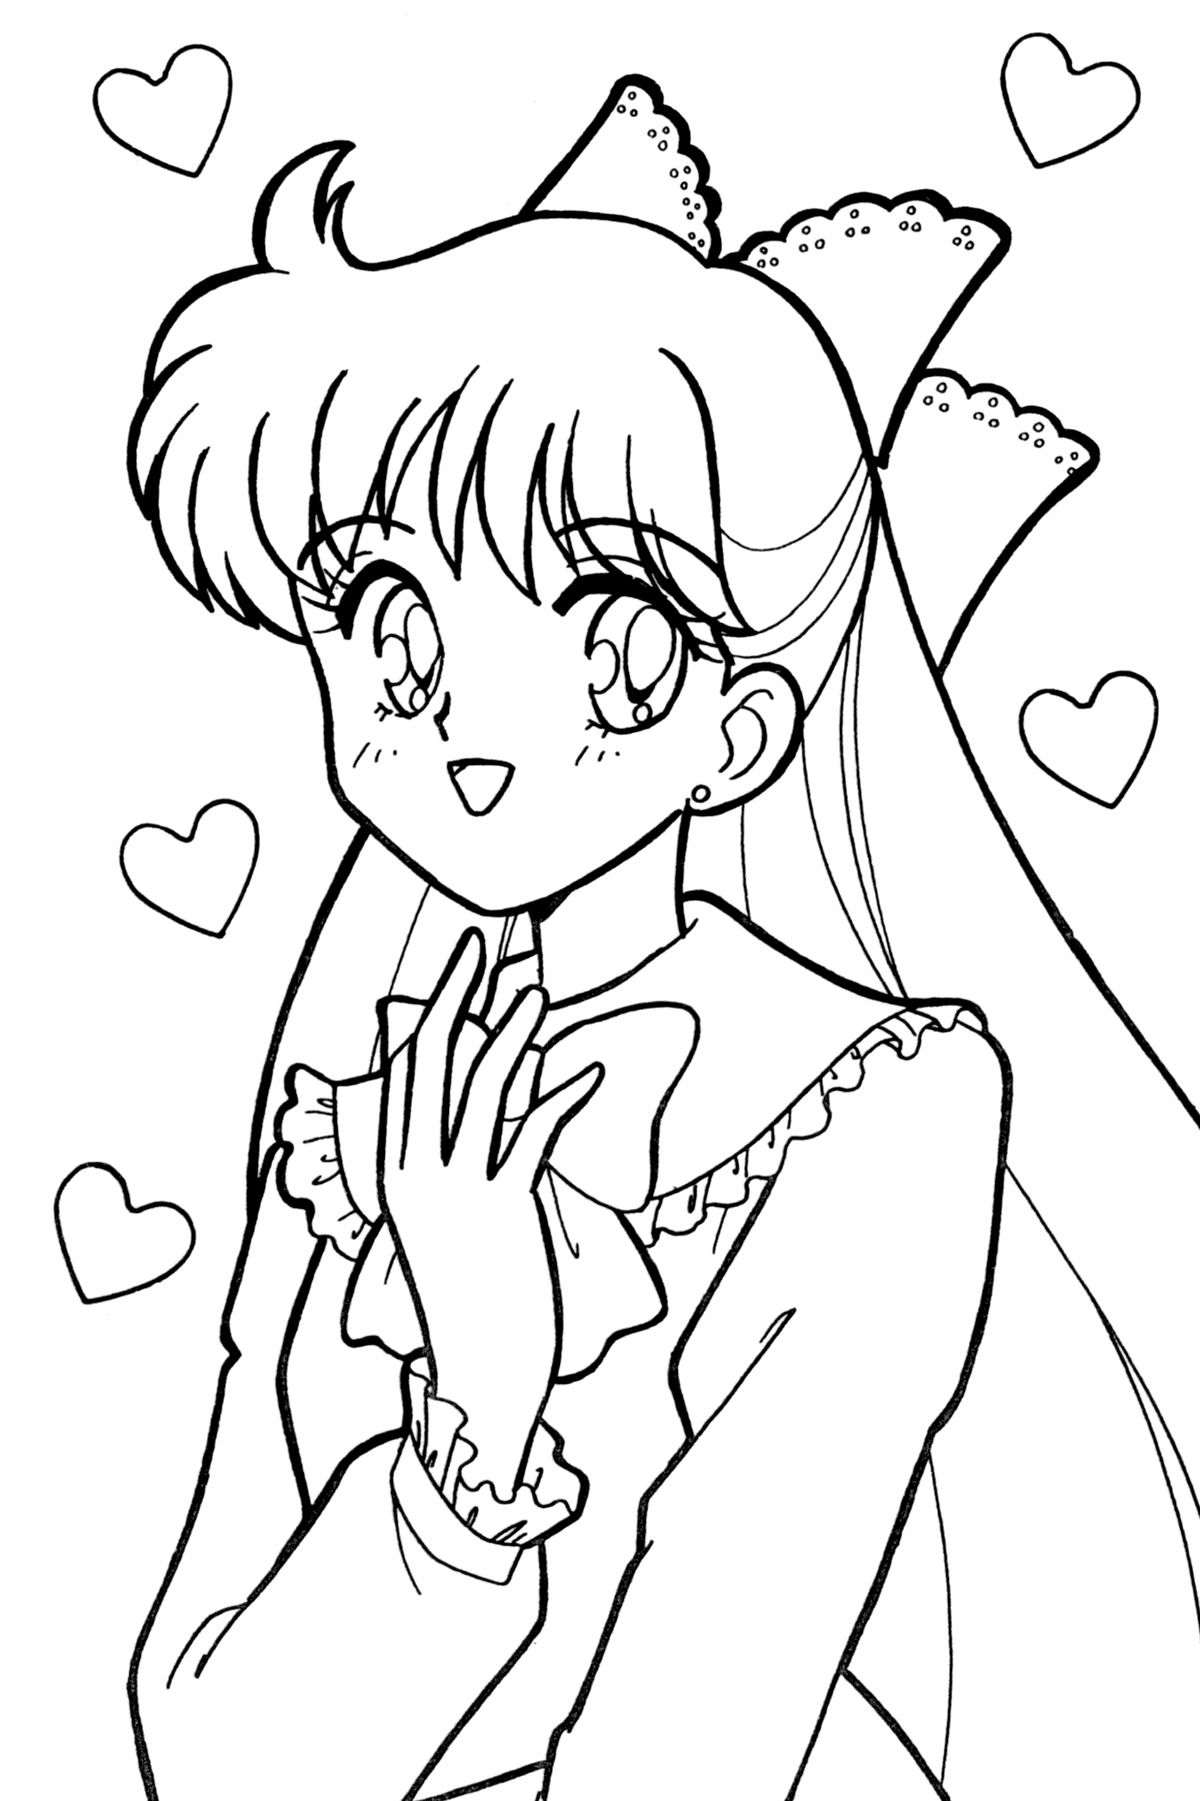 Pin de Patricia Iannone en Manga - Sailor Moon | Pinterest